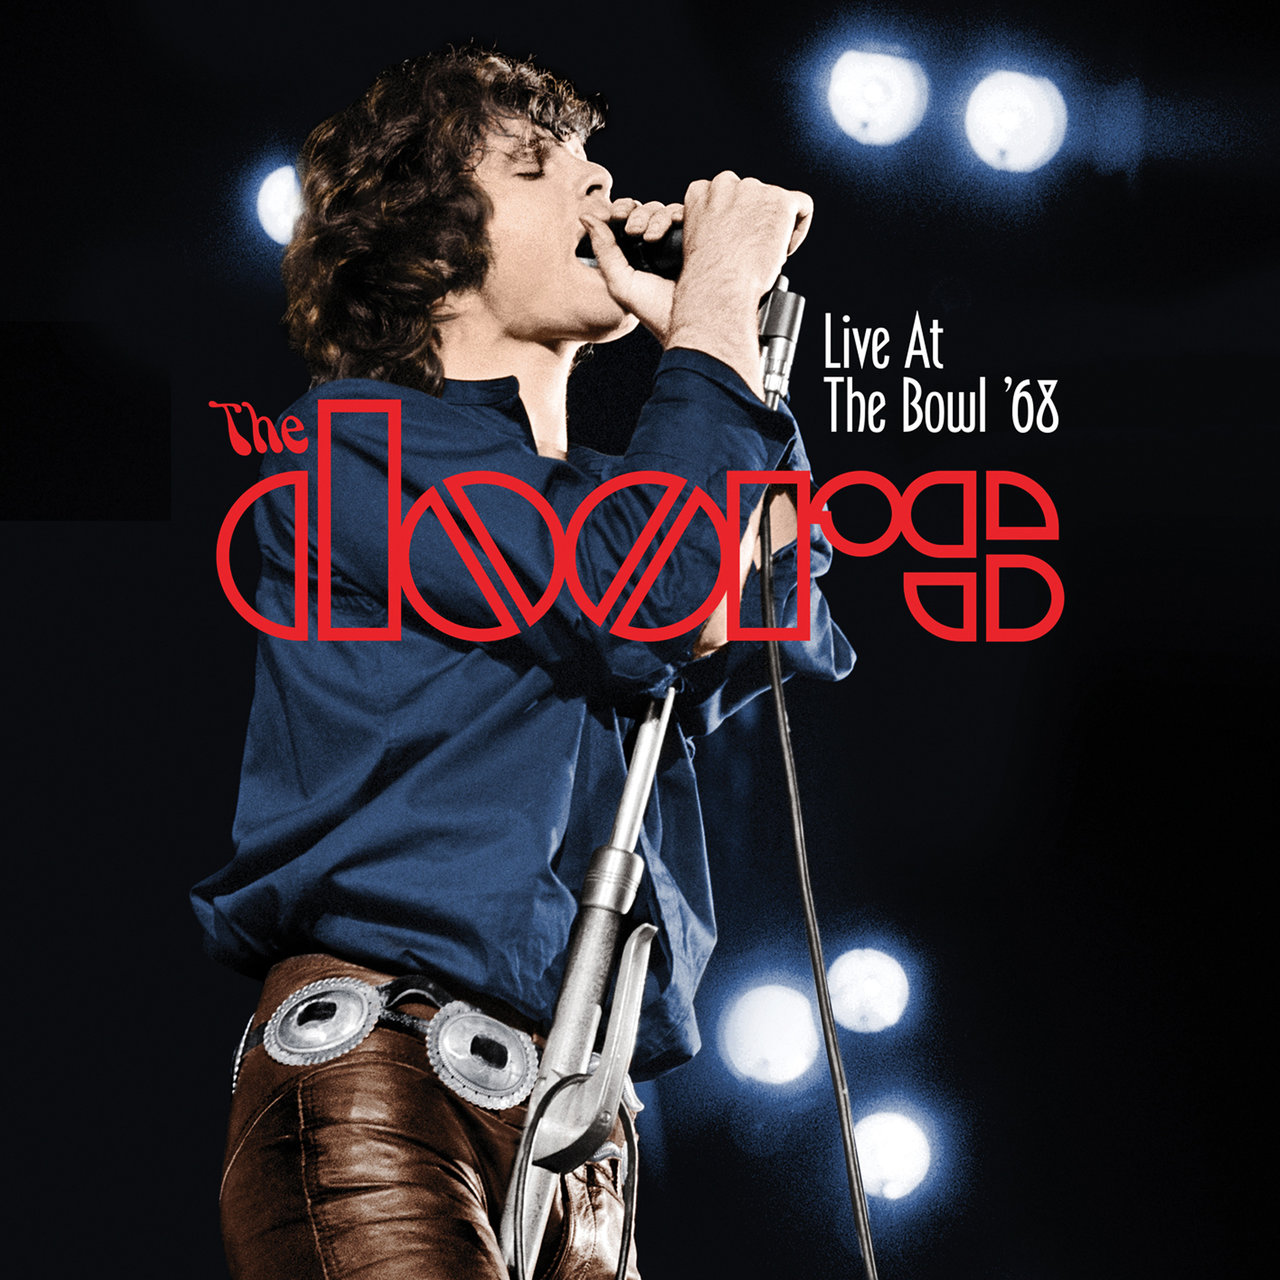 Live At The Bowl '68